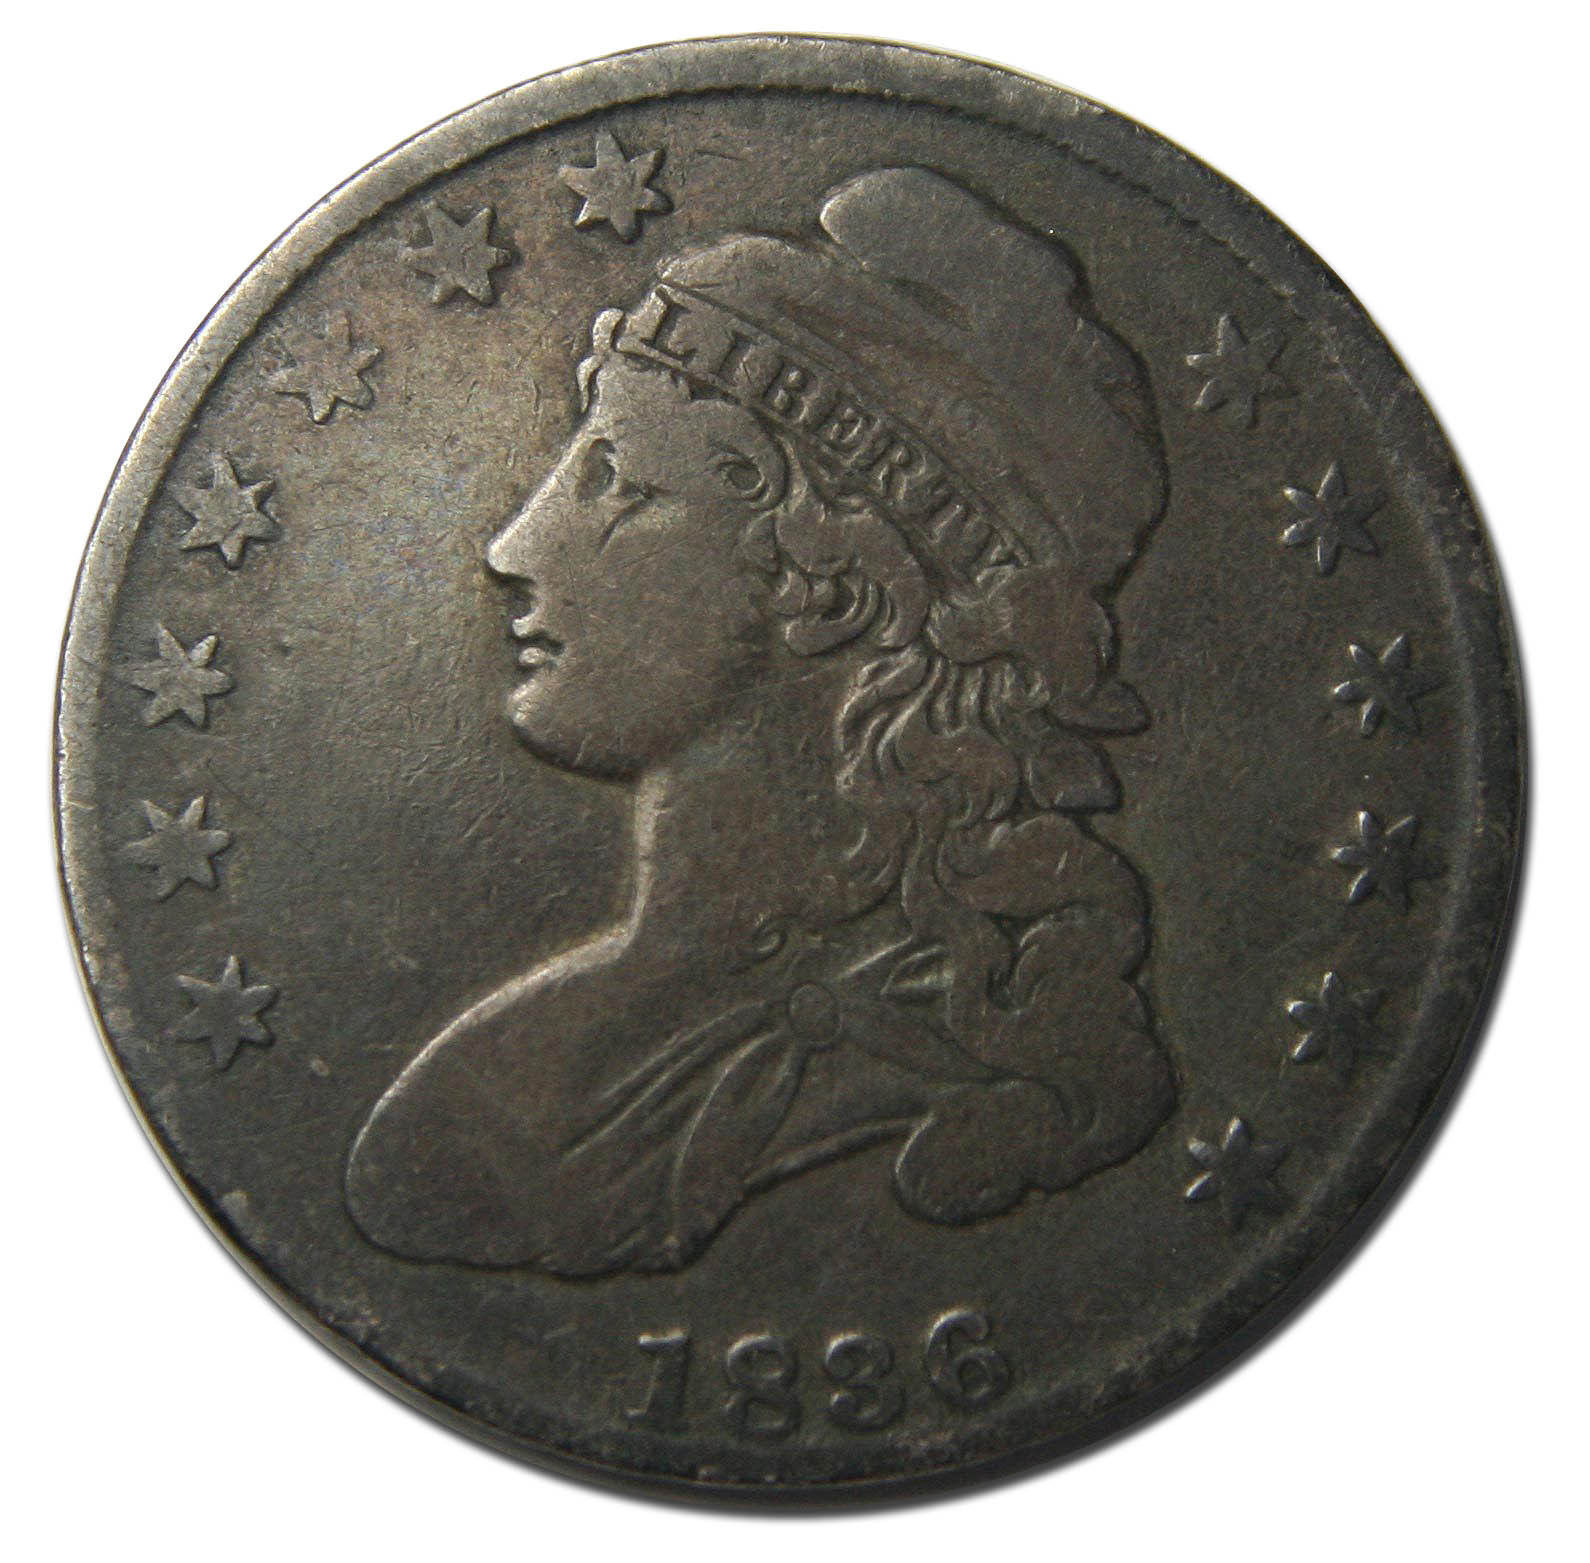 1836 Capped Bust Half Dollar 50¢ Coin Lot# A 289